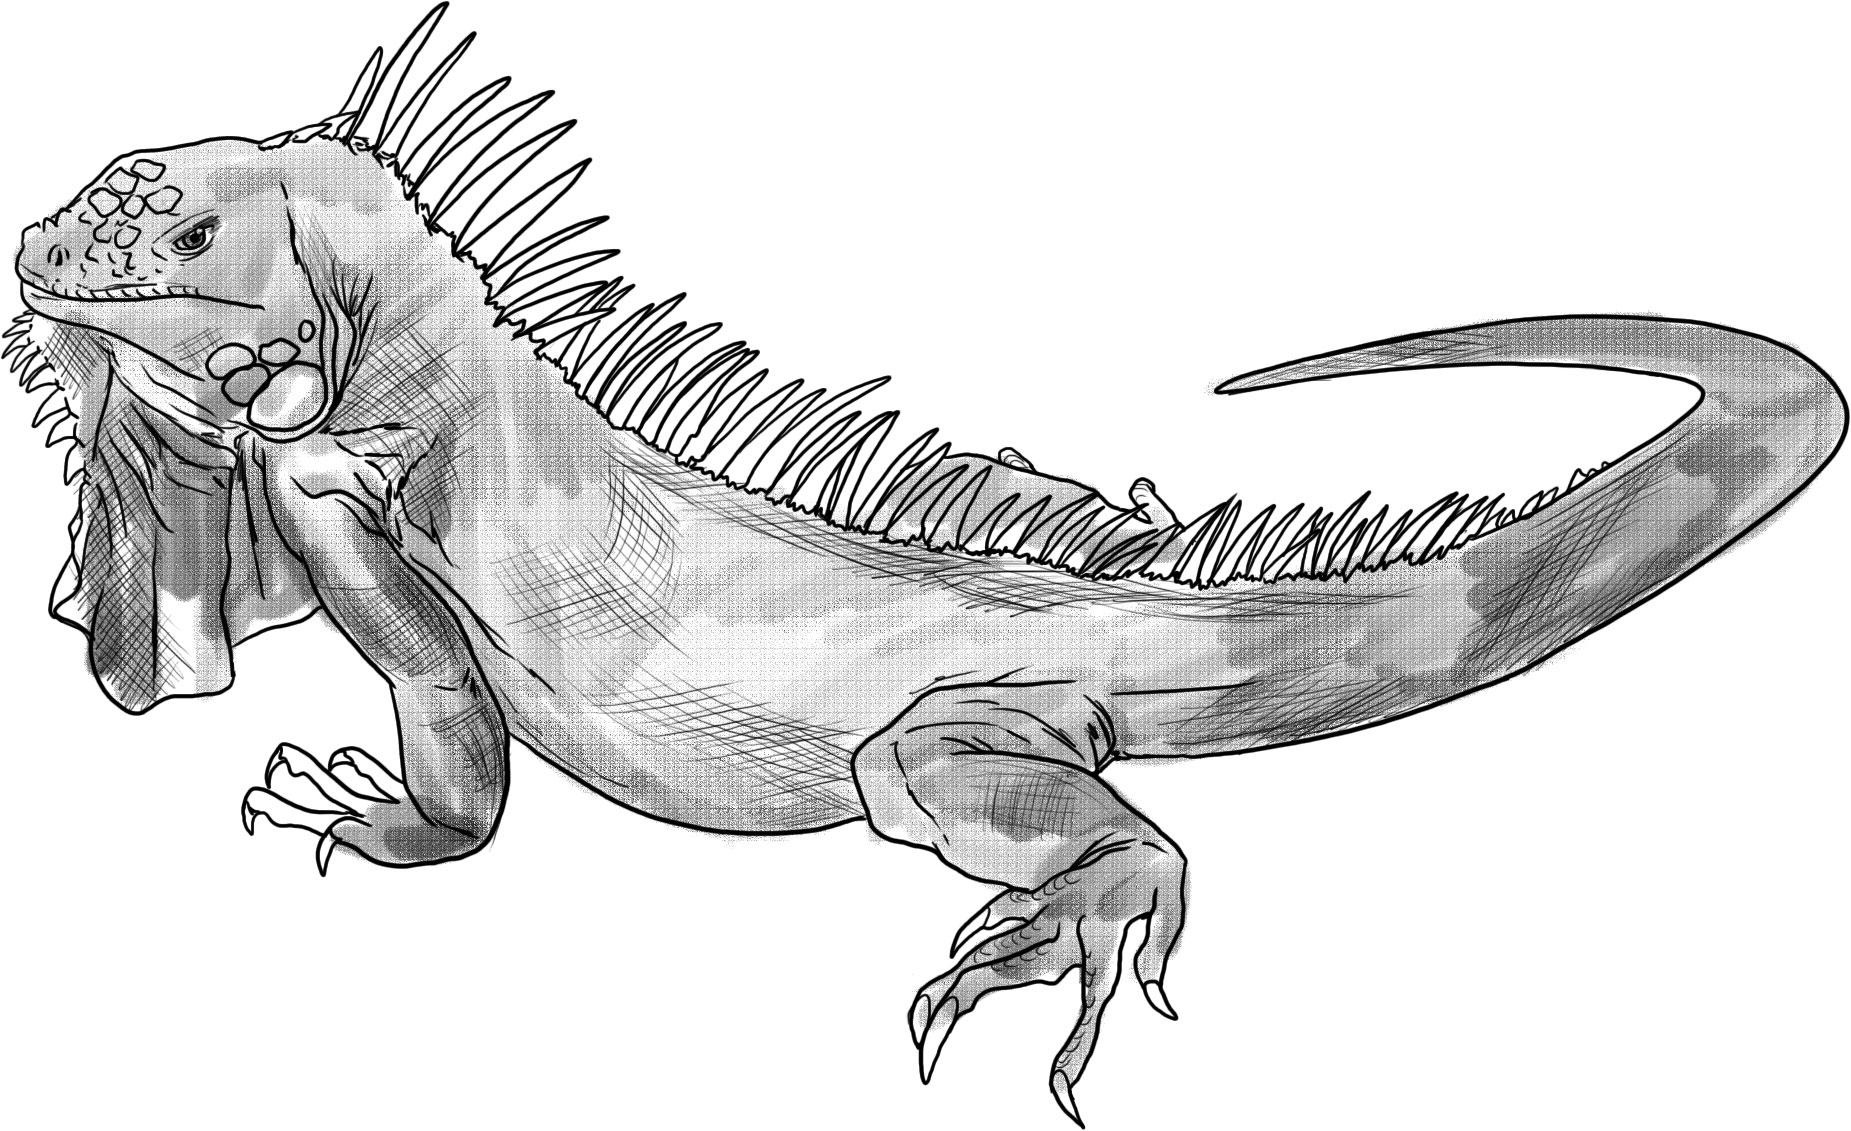 iguana coloring page iguana coloring pages to download and print for free iguana page coloring